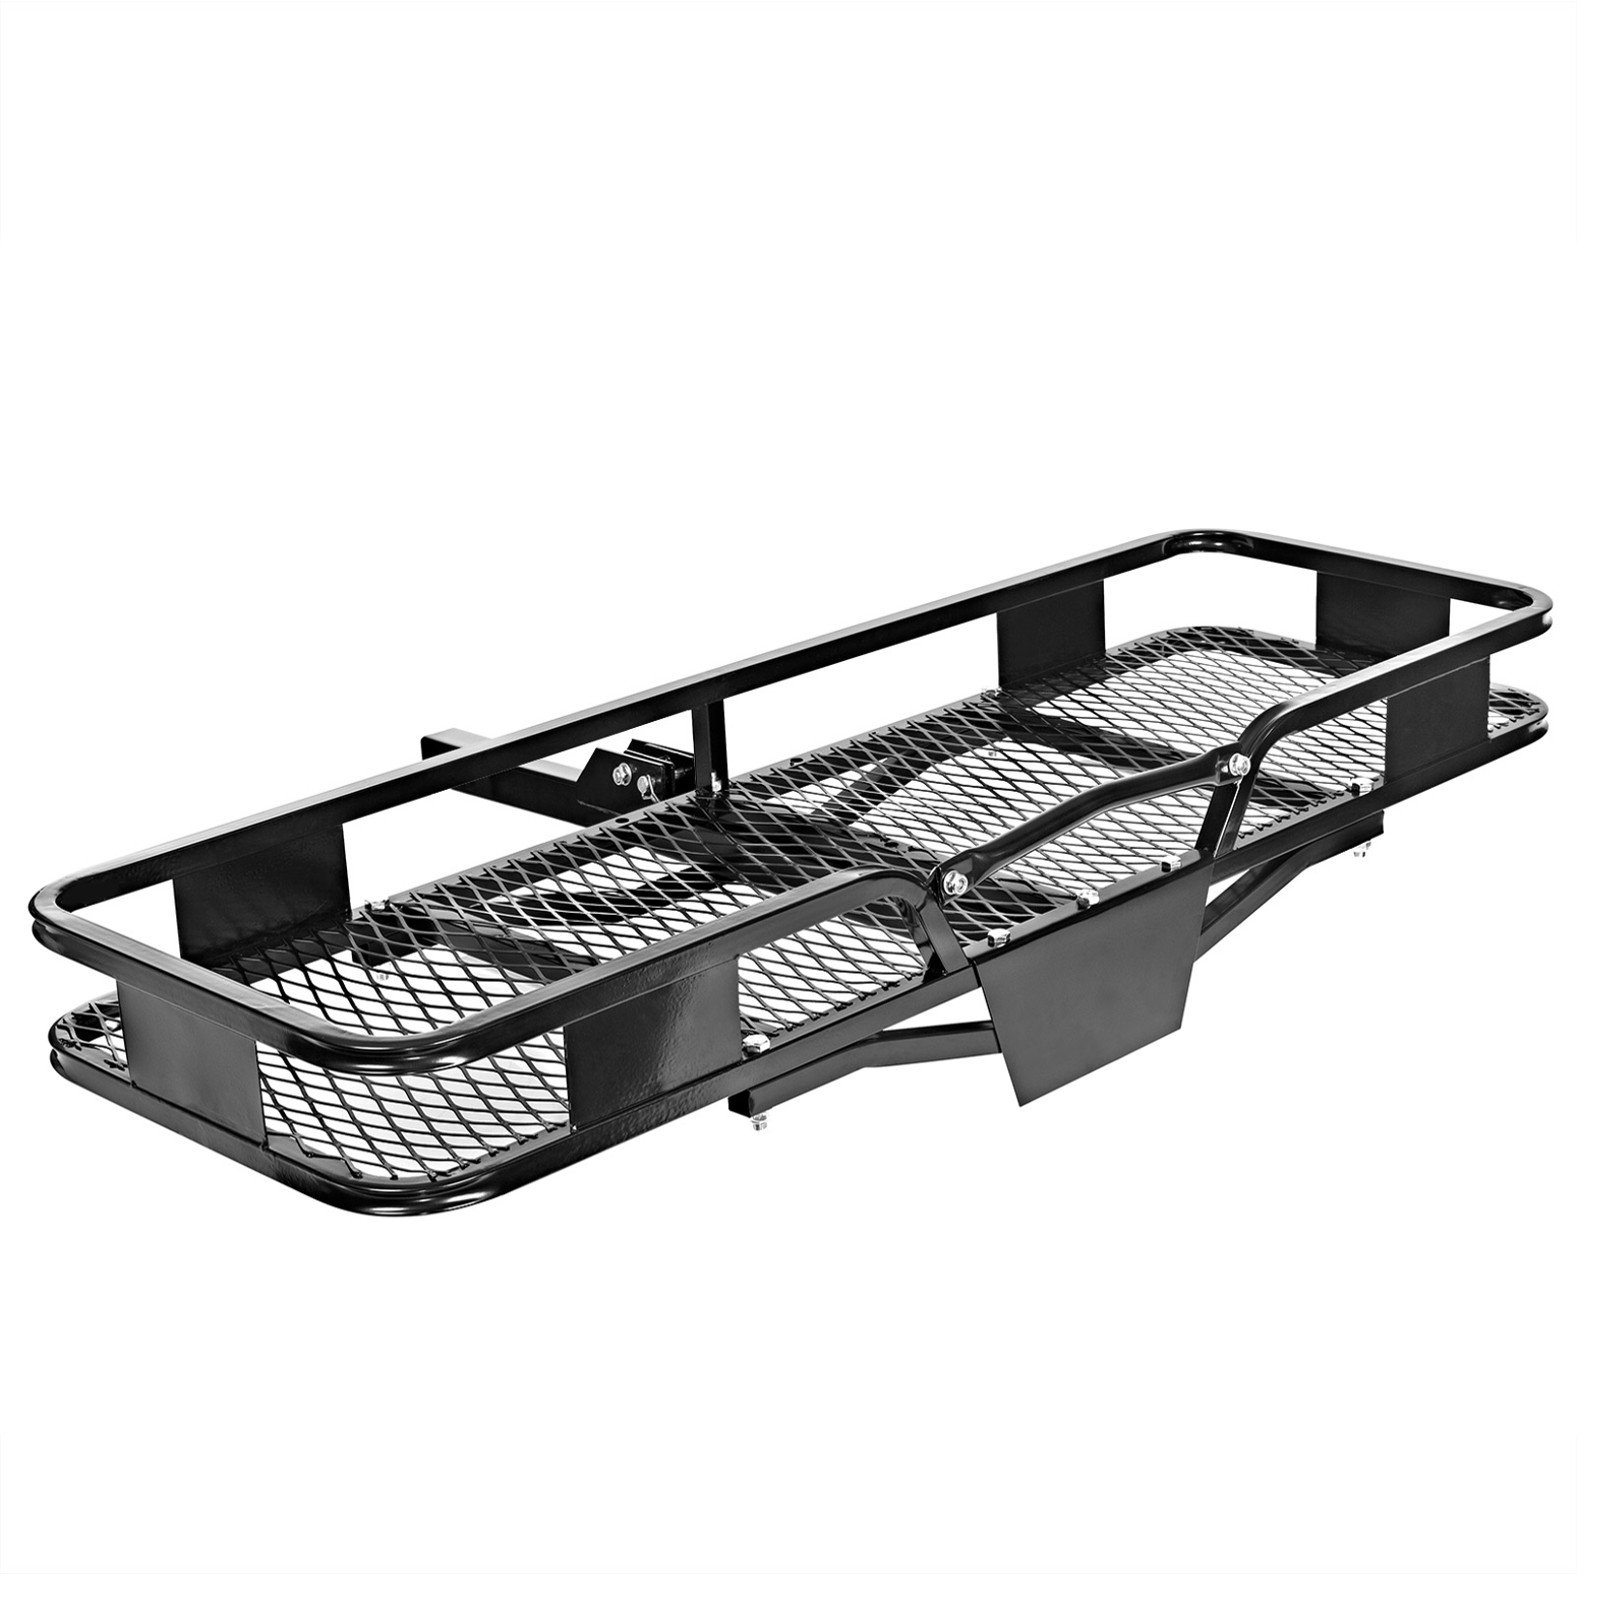 Direct Aftermarket Folding Hitch Cargo Carrier 60 inch Hauler 2 inch Receiver and Cargo Bag Combo by Direct Aftermarket (Image #2)